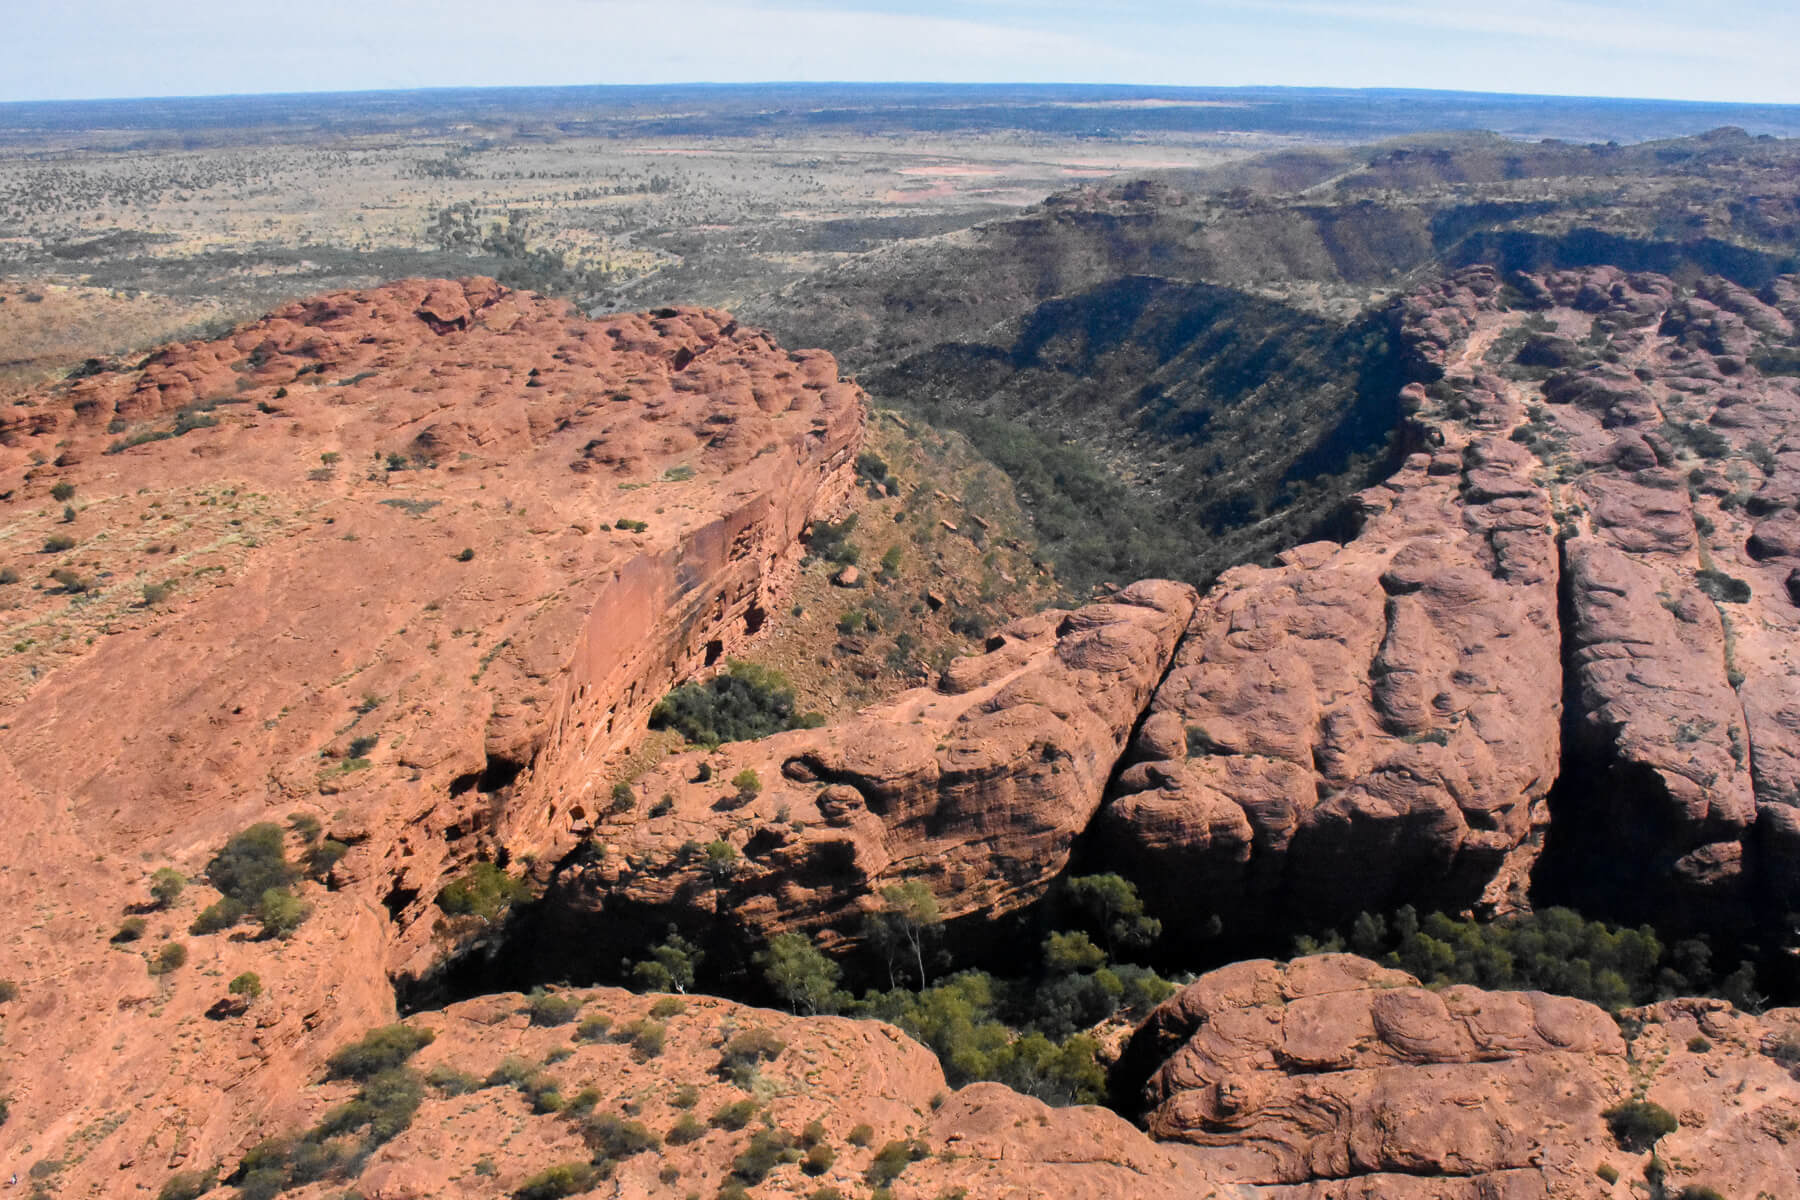 View of Kings Canyon from a Helicopter